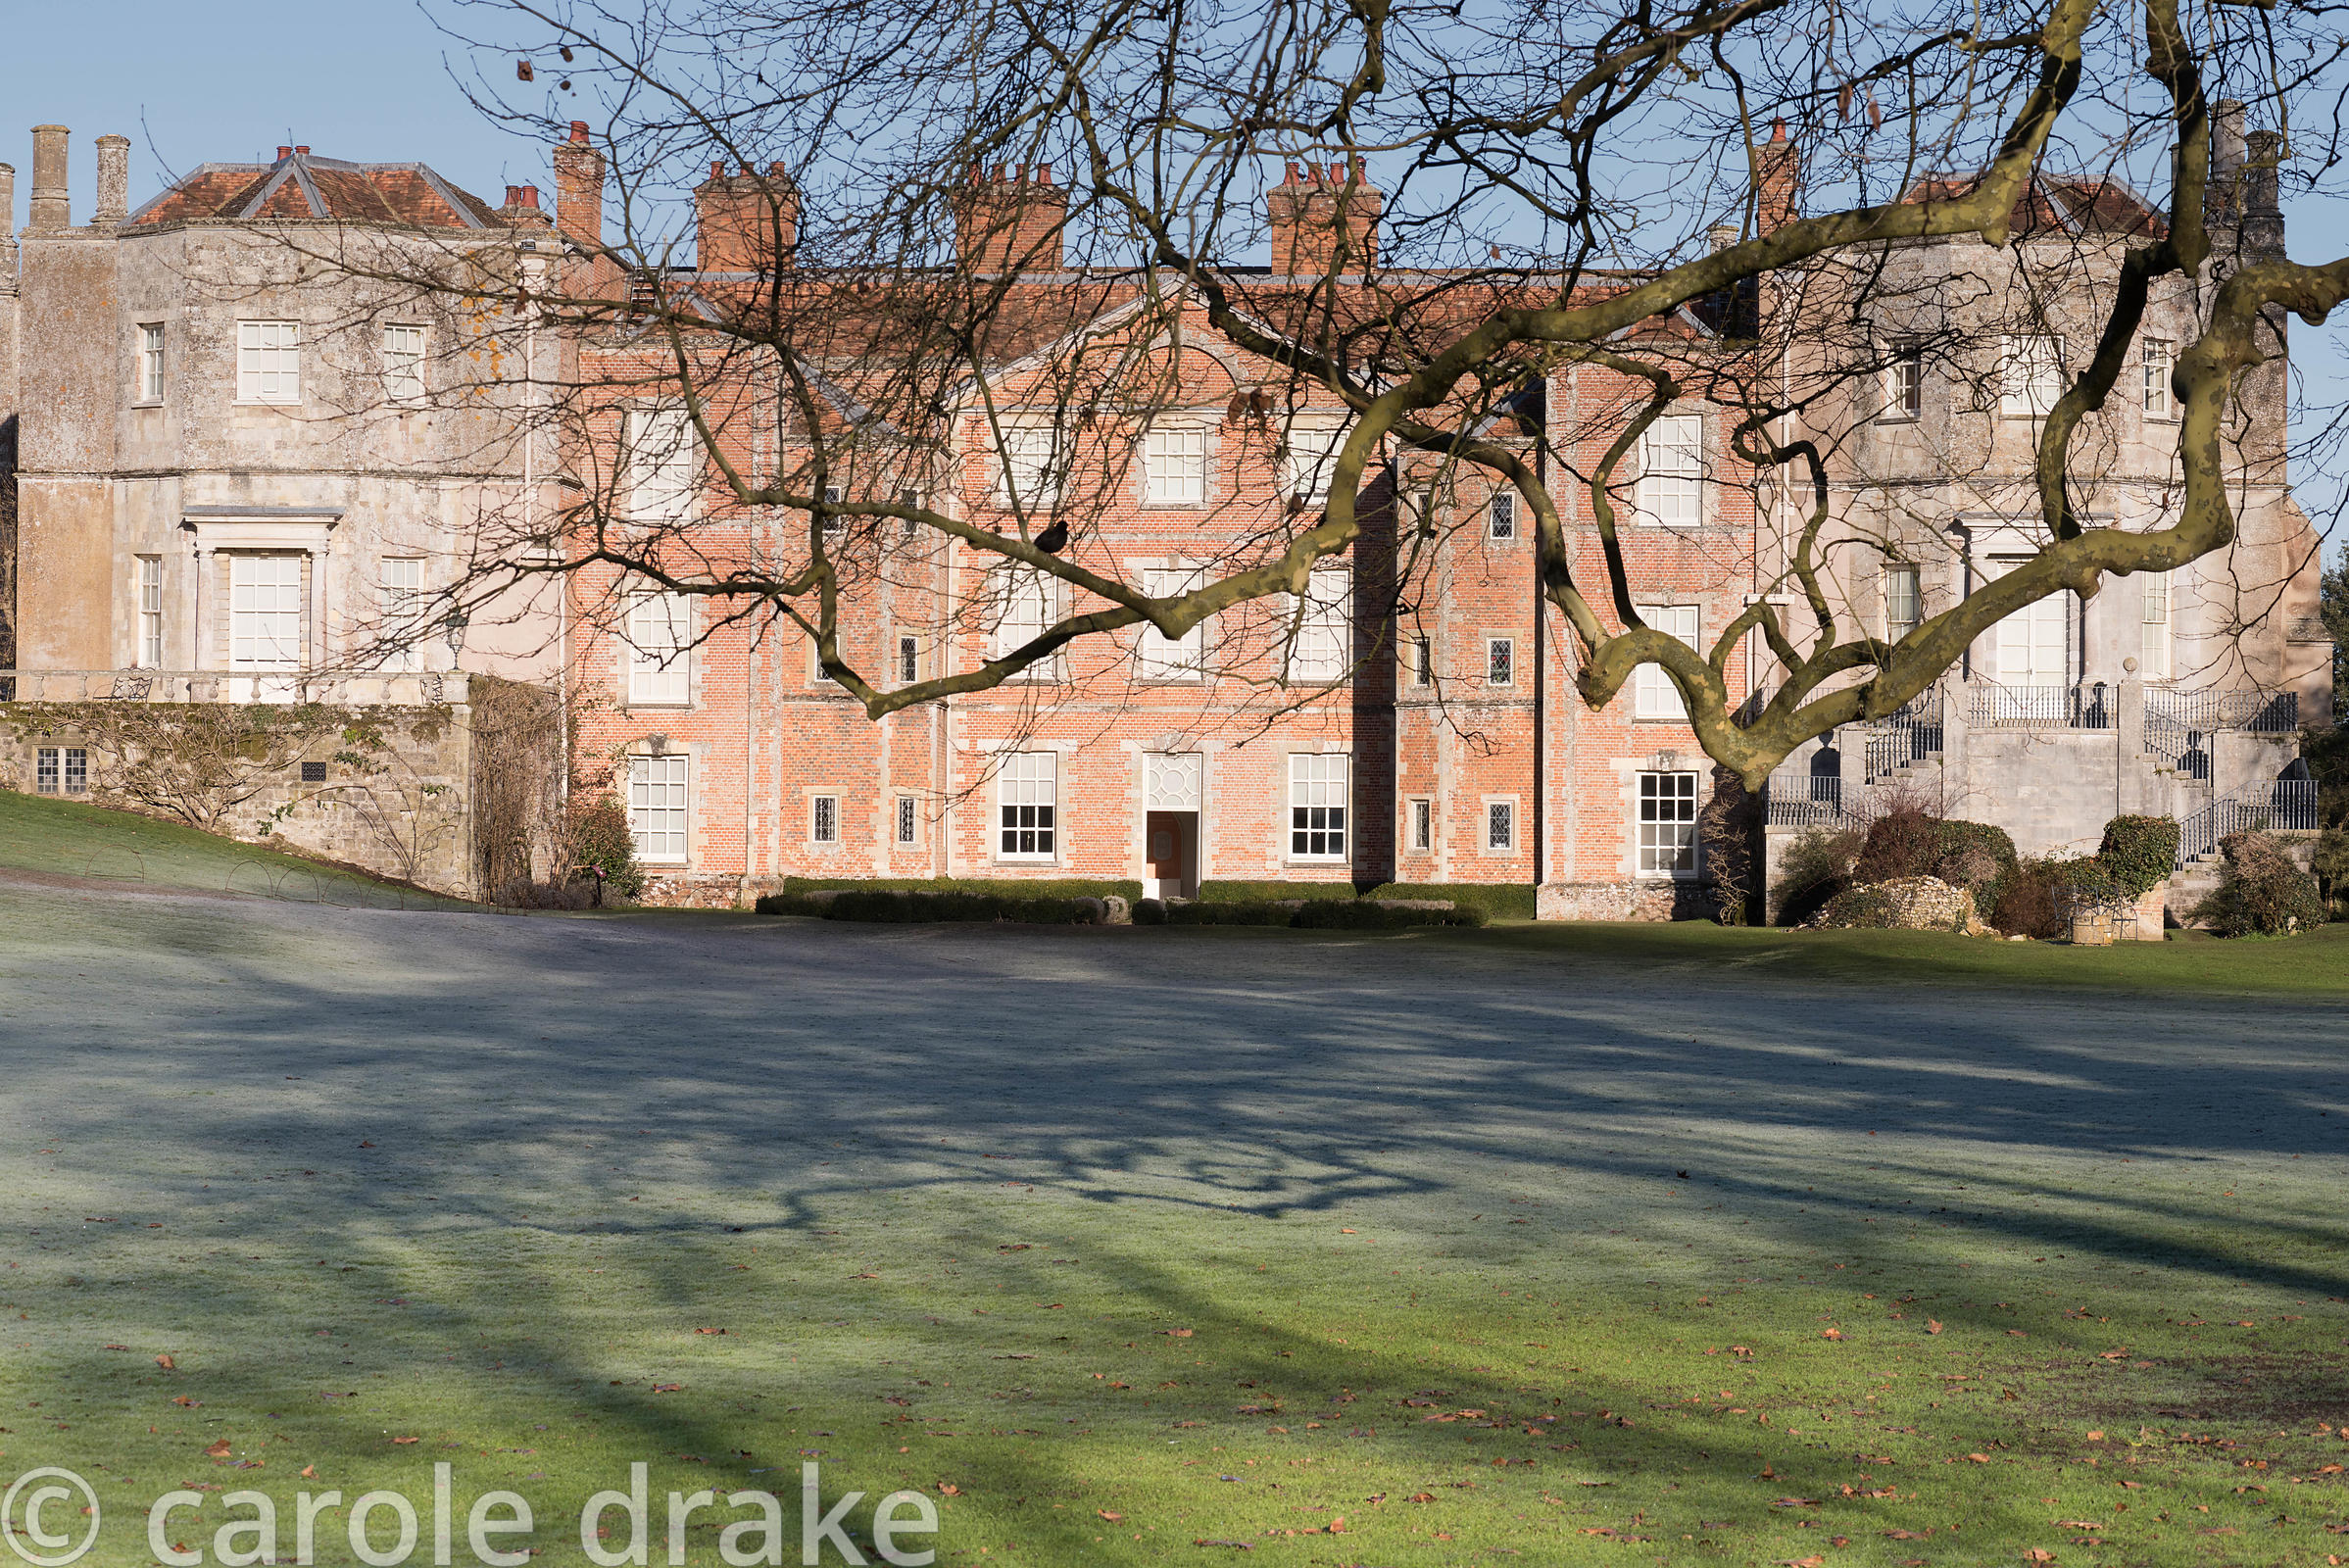 Facade of Mottisfont house with frosted lawn patterned with shadow in January